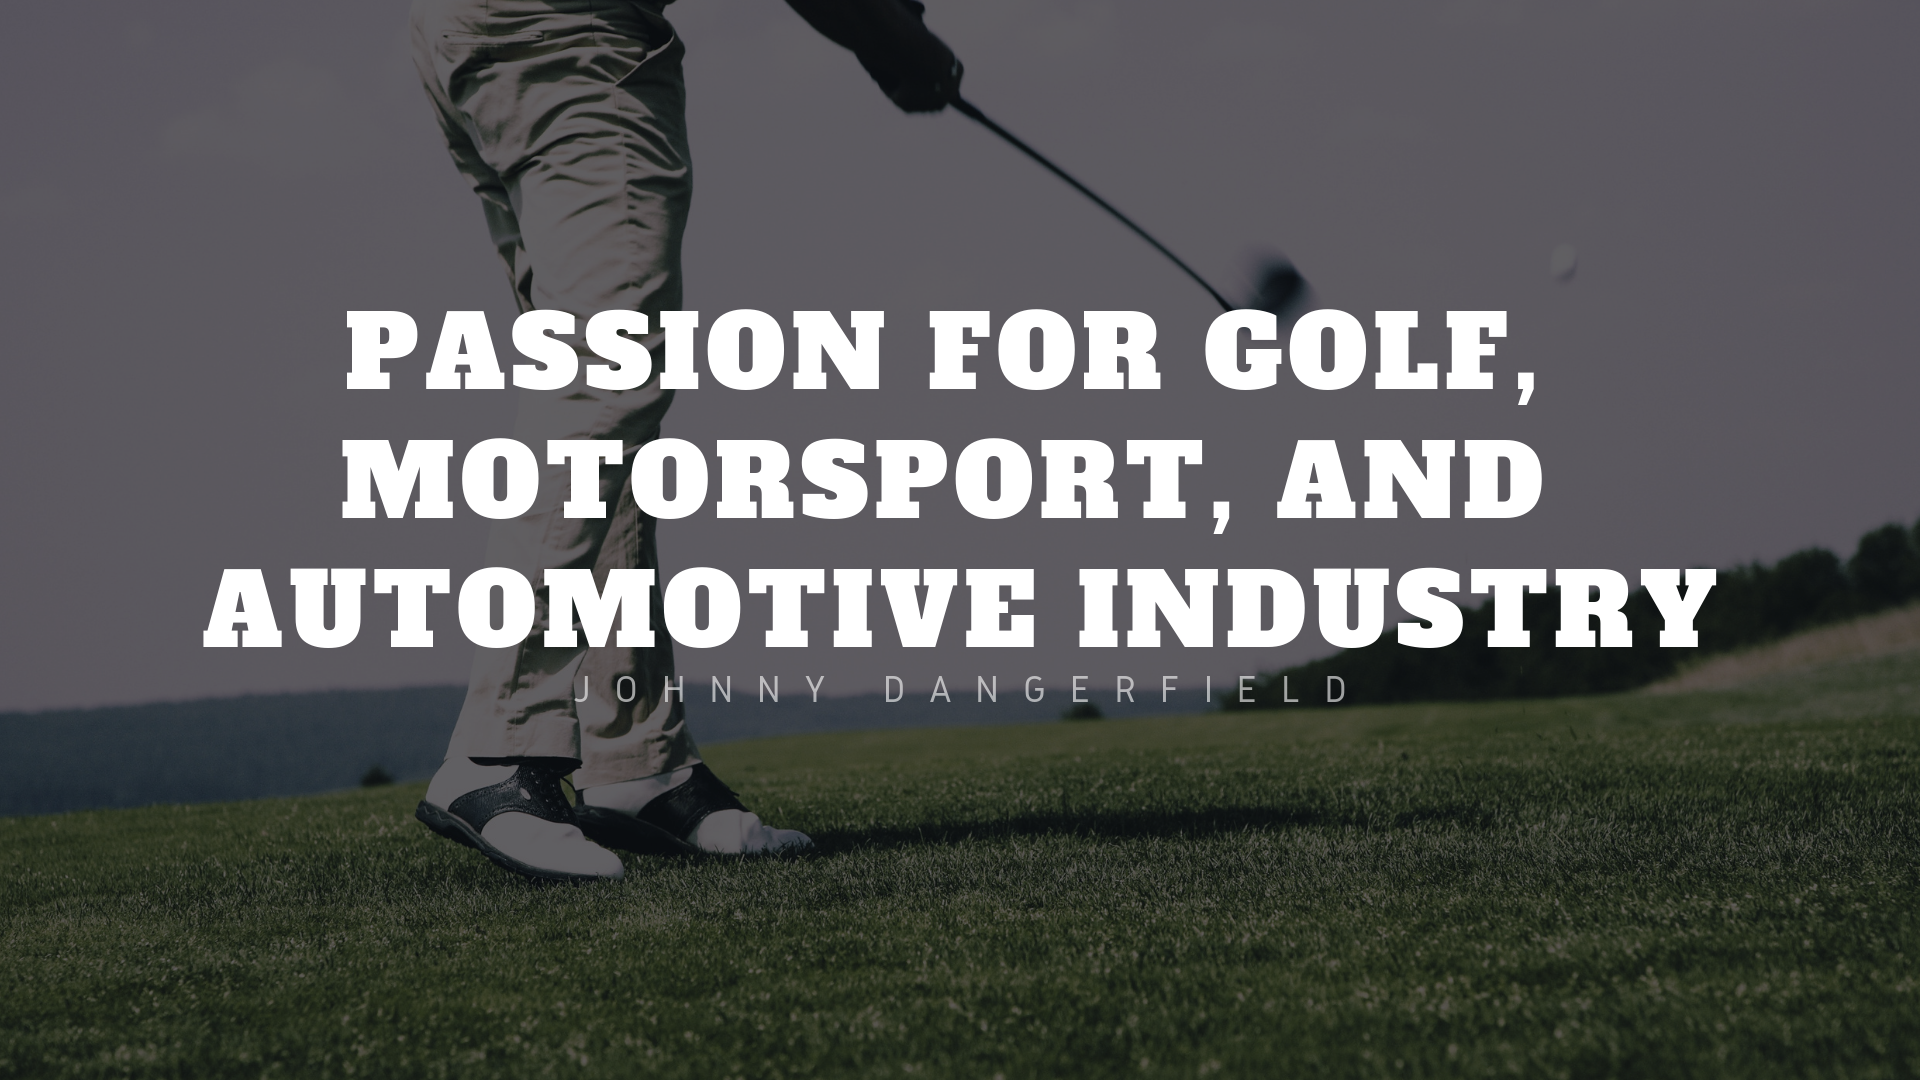 Johnny Dangerfield Shares Passion for Golf, Motorsport, and Automotive Industry